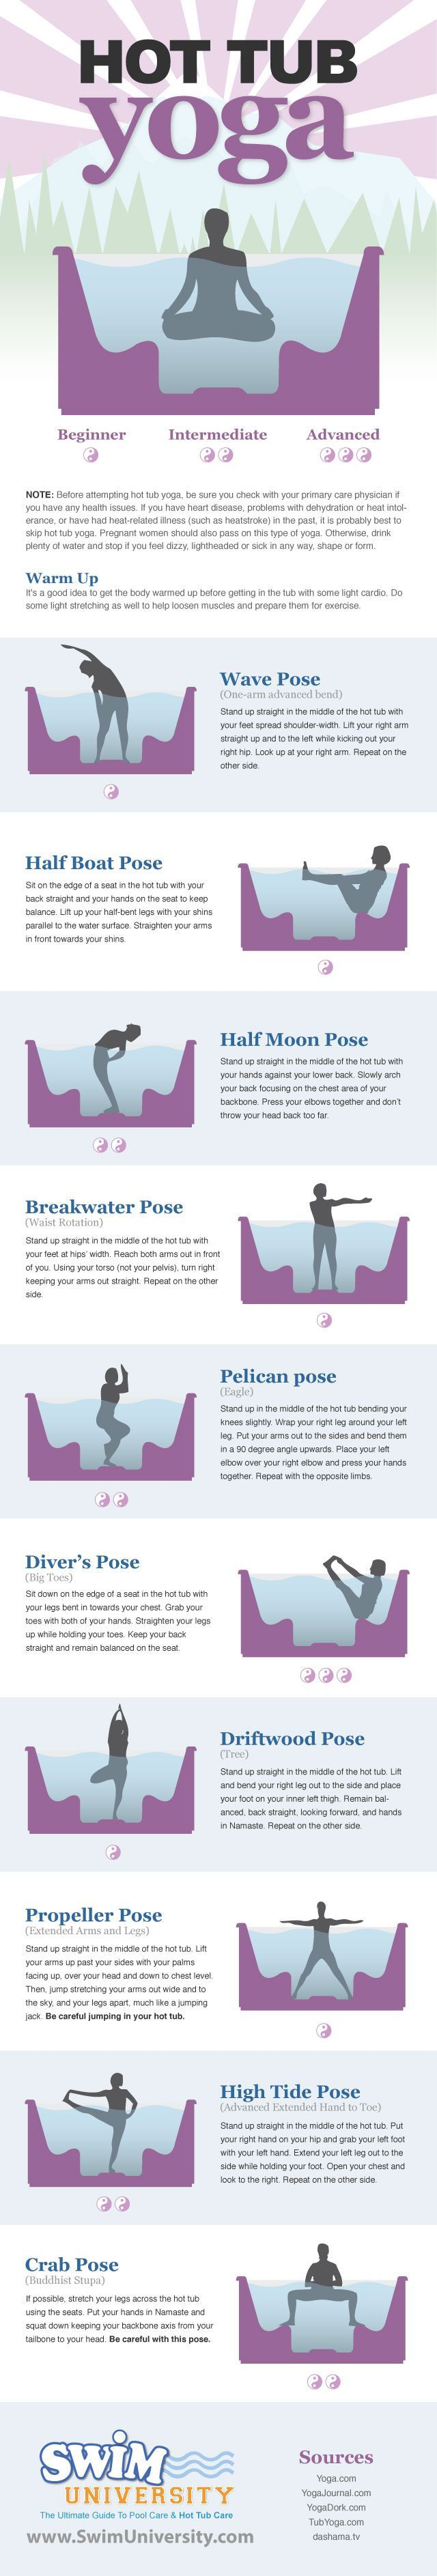 Hot Tub Yoga Info graphic From Swim University.    Here is the link:  http://www.swimuniversity.com/blog/hot-tub-yoga-infographic#